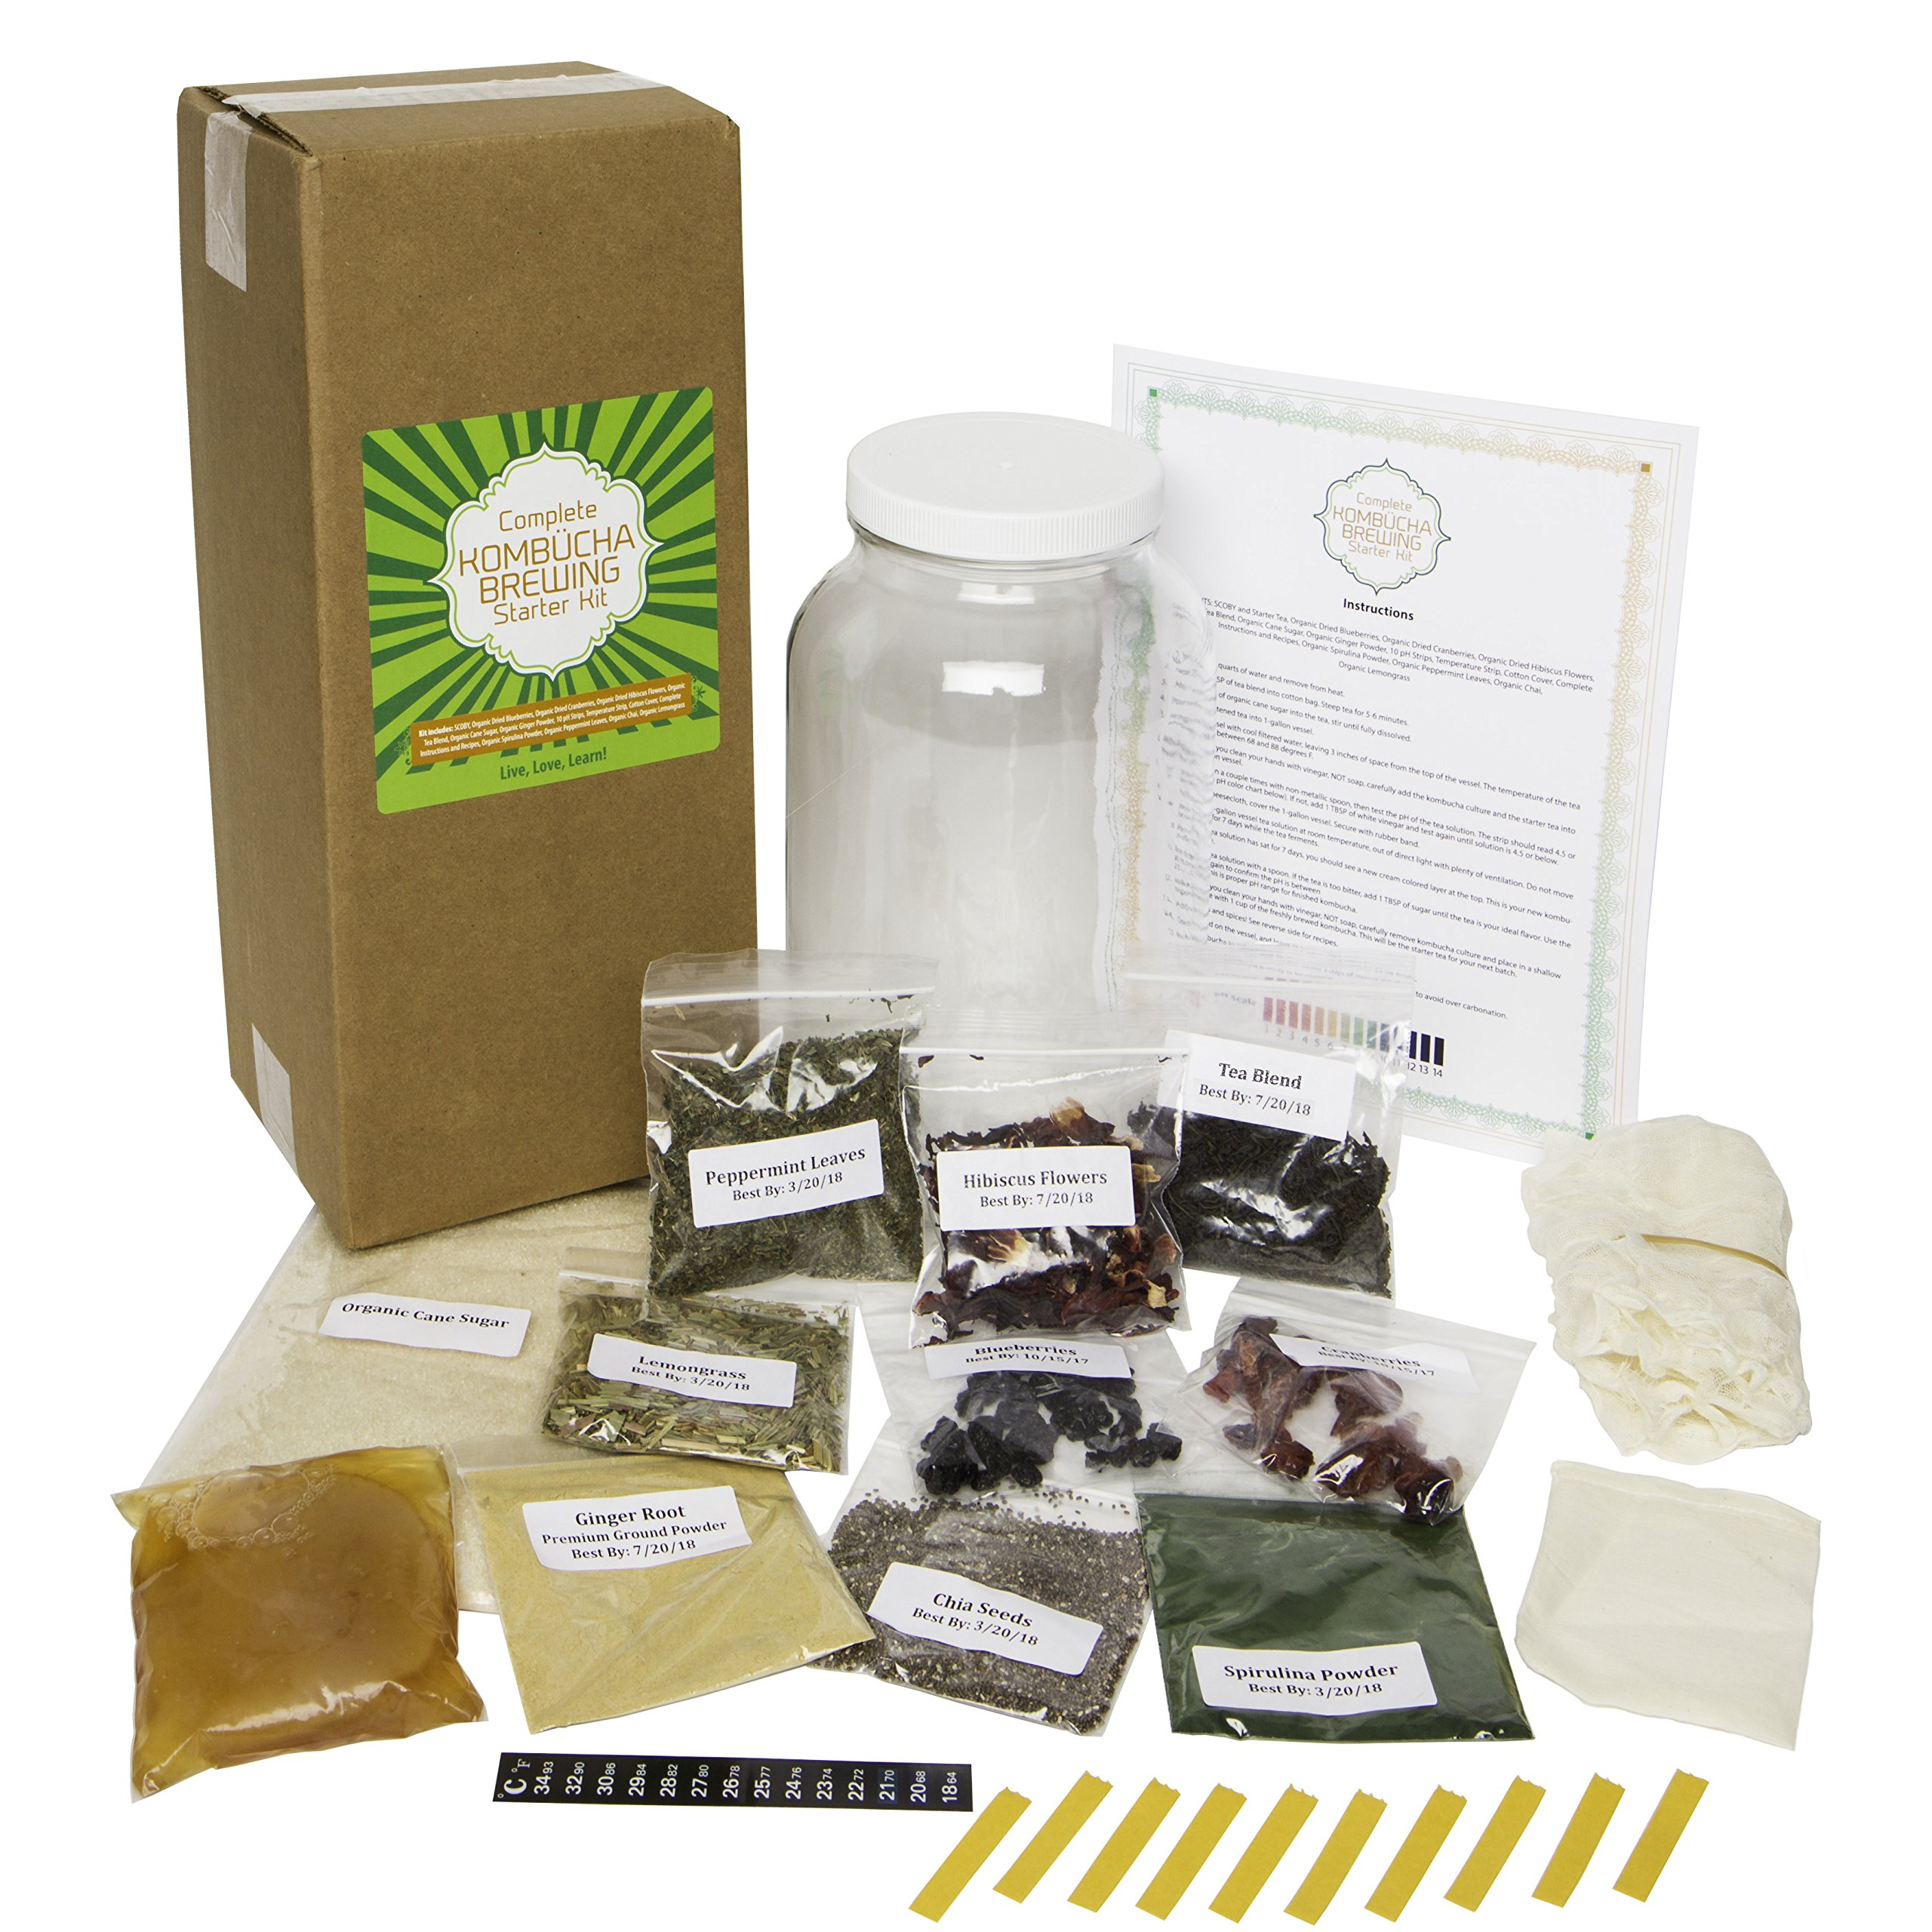 DIY Kombucha Brewing Starter Kit